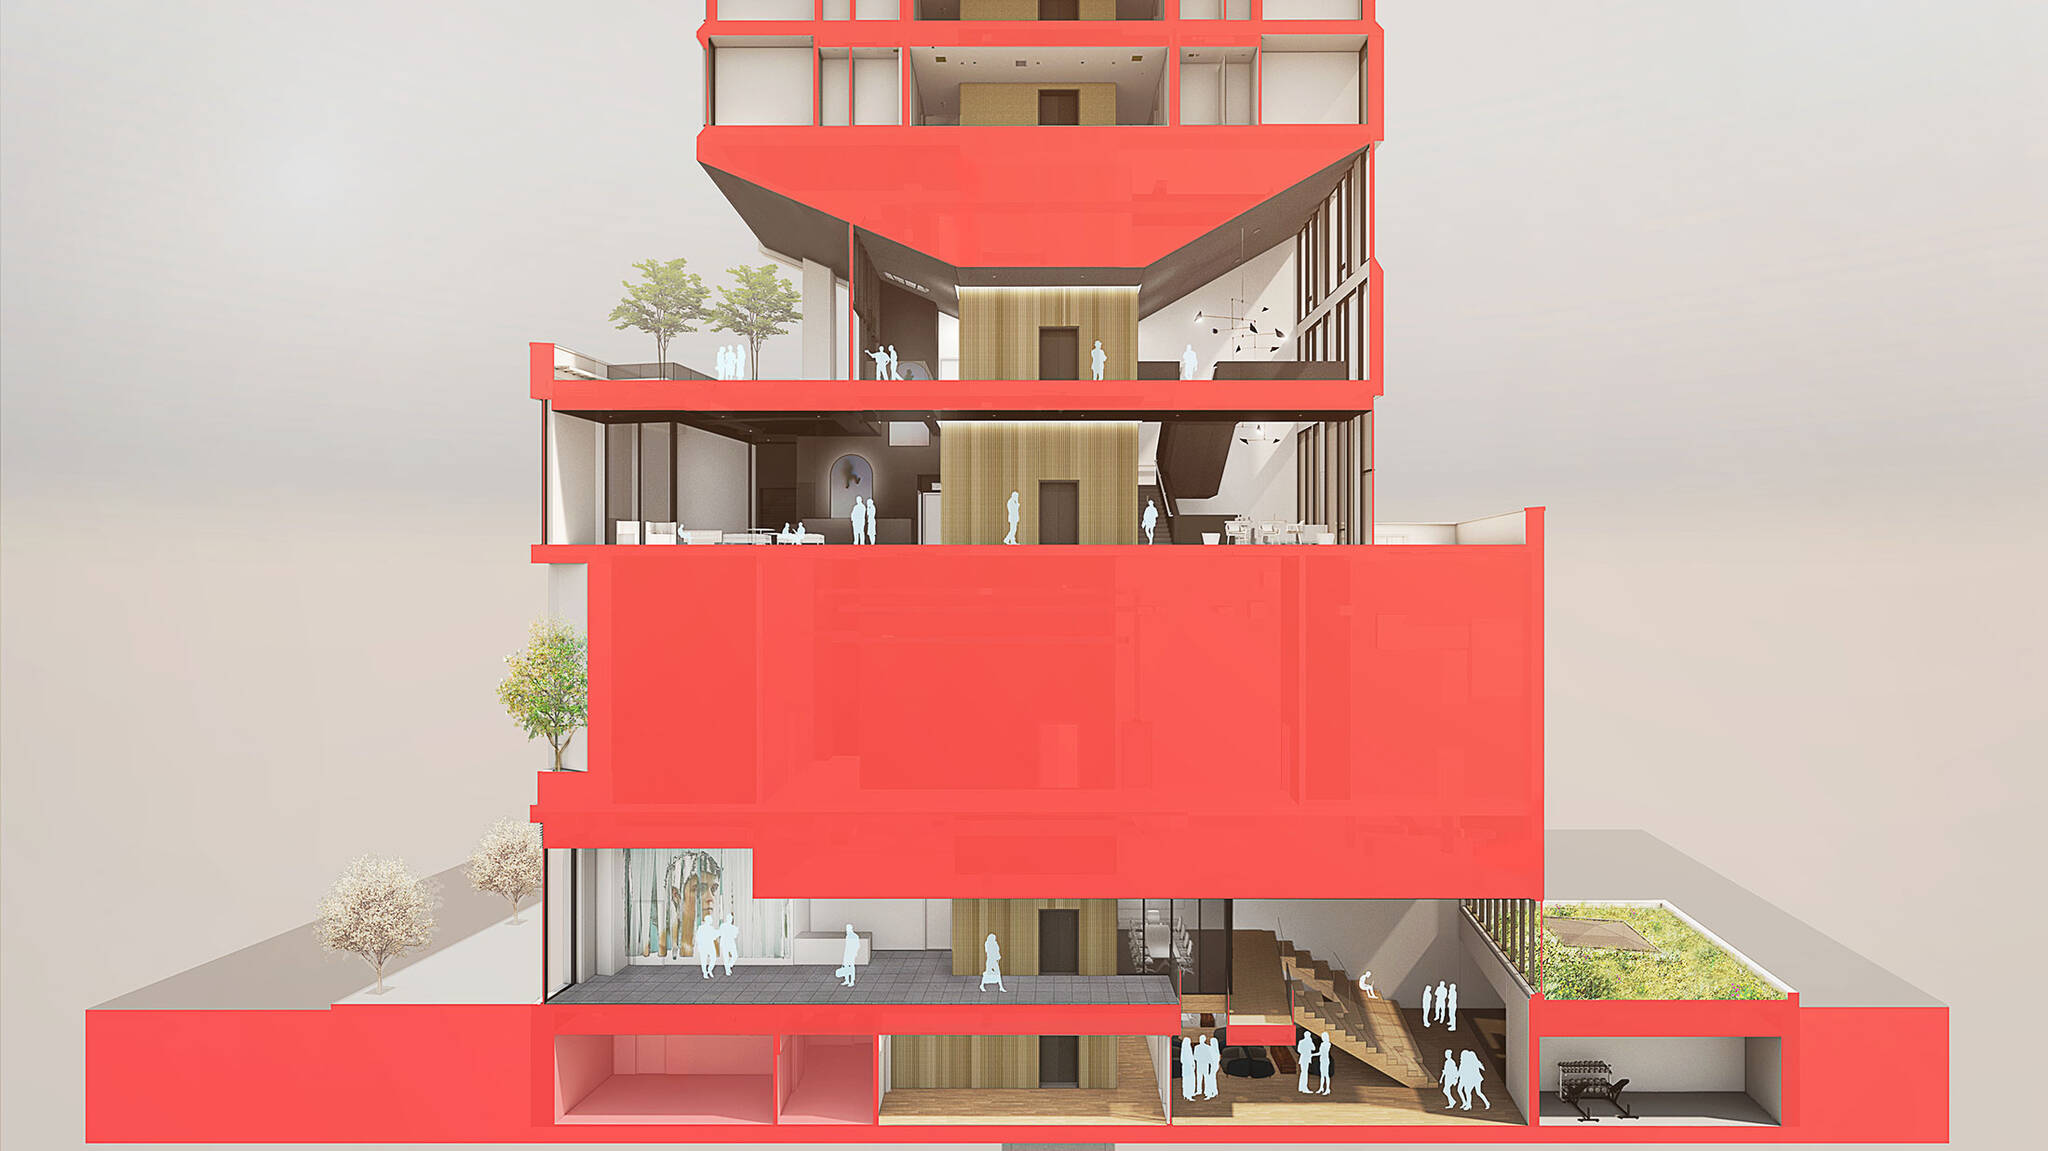 Perspective section view of the Modular AC Hotel project located at 842 Sixth Avenue in NoMad, New York City designed by the architecture studio Danny Forster & Architecture